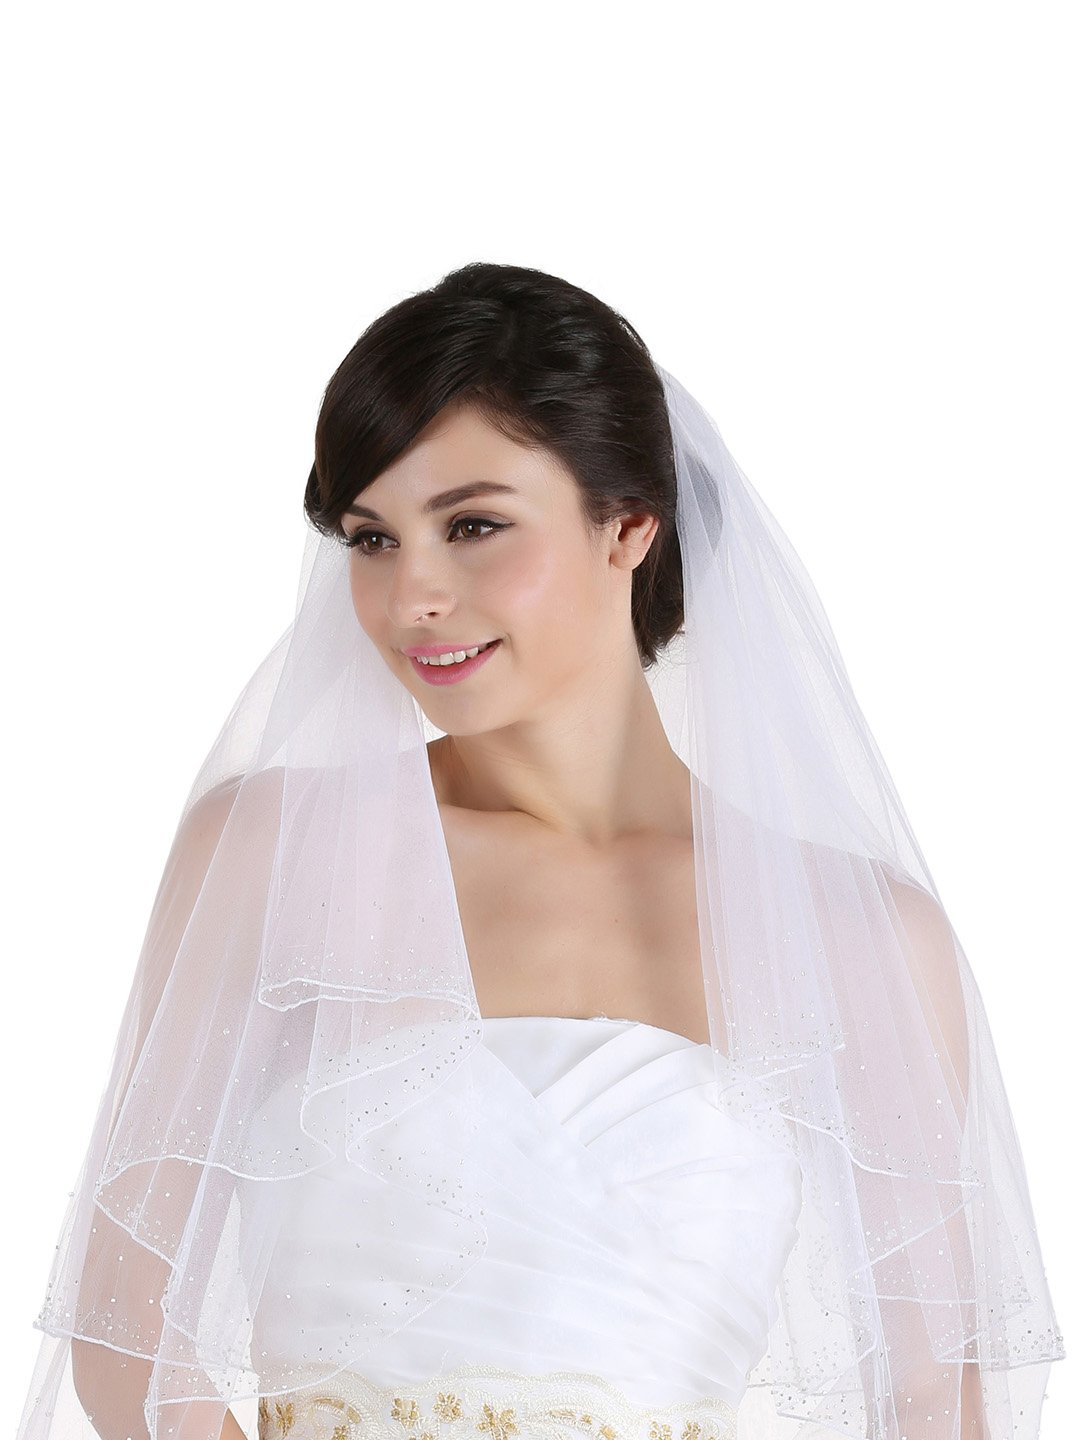 2T 2 Tier 2.5'' Wide Crystal Beaded Edge Bridal Wedding Veil - White Cathedral Length 108''